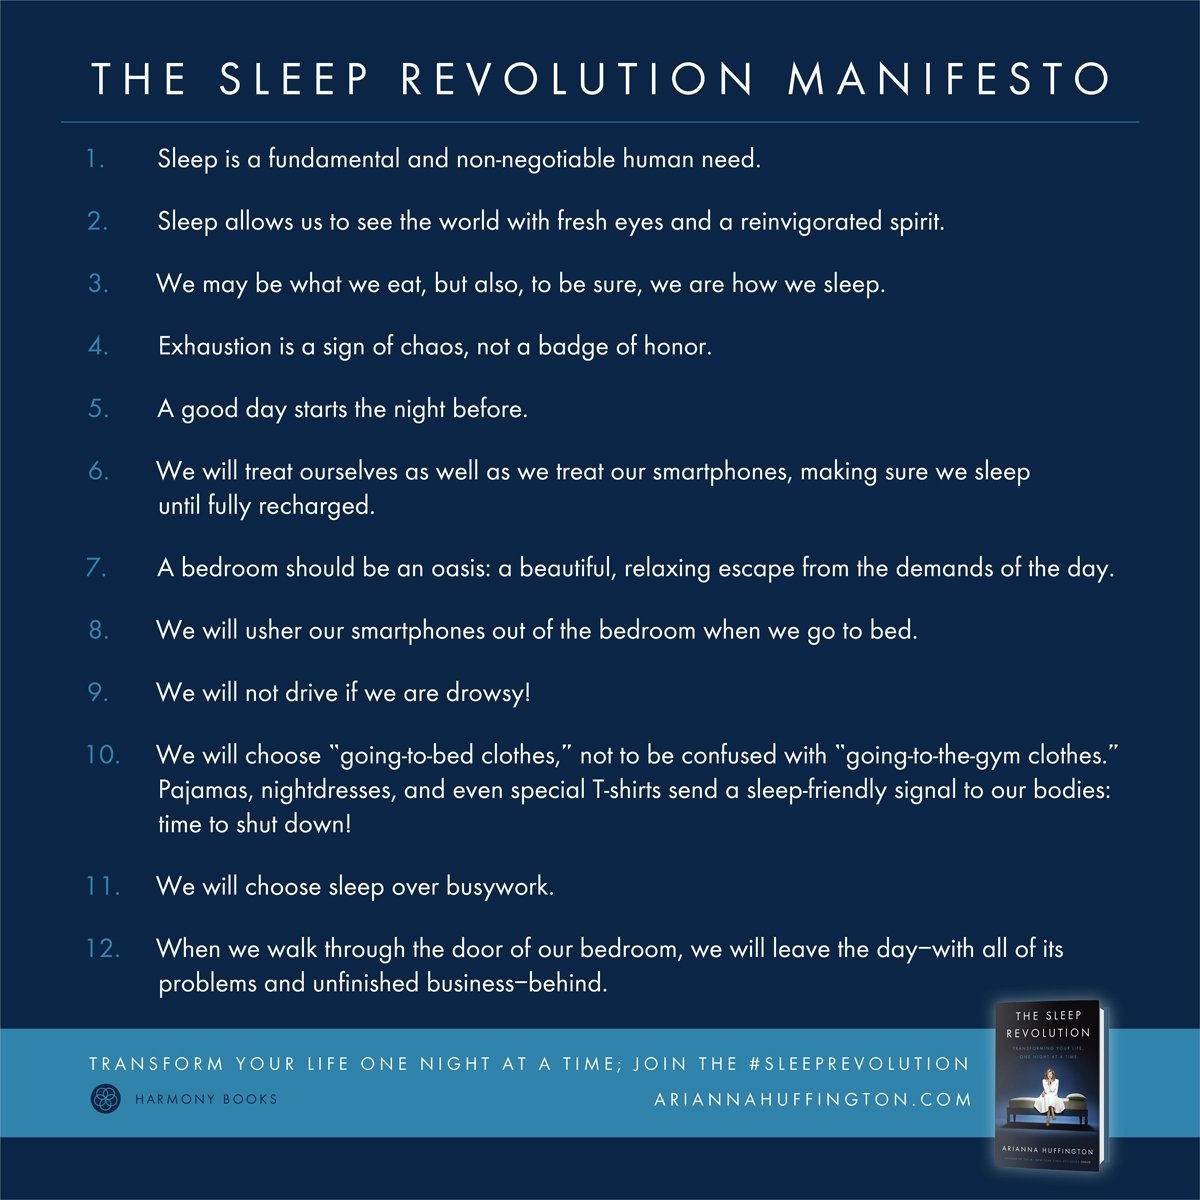 My good friend @ariannahuff has shared 12 tips for a better sleep #SleepRevolution https://t.co/ZZIfs9SPau